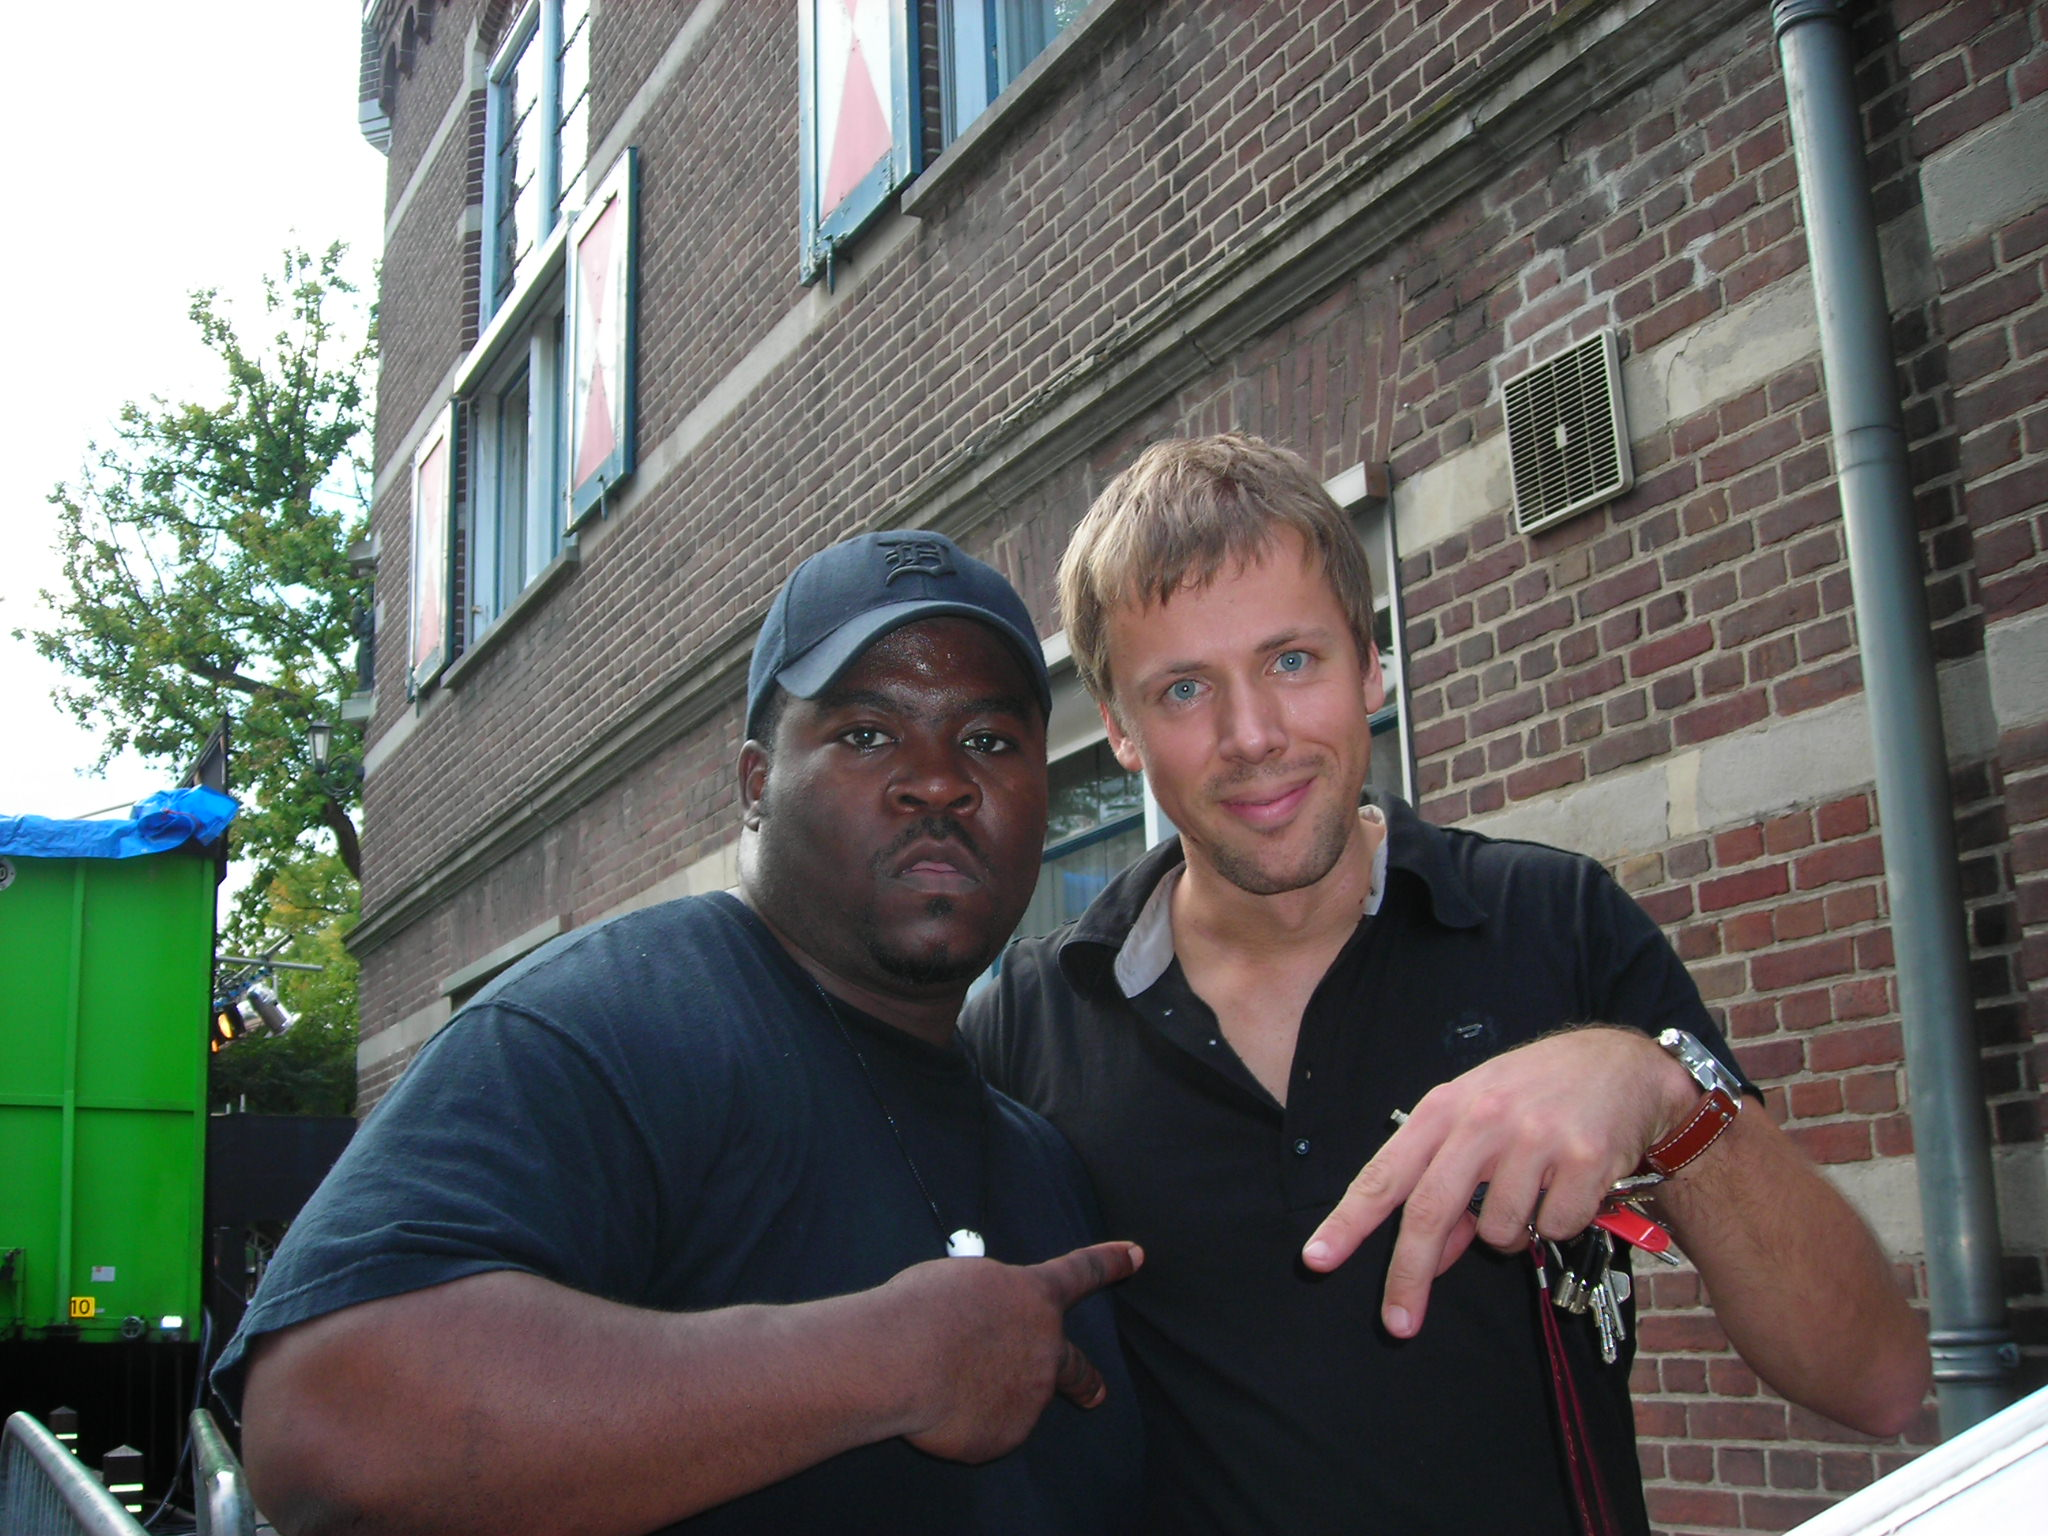 on tour - 2011 in the Netherlands with Chris Coleman, who played drums on my first album.